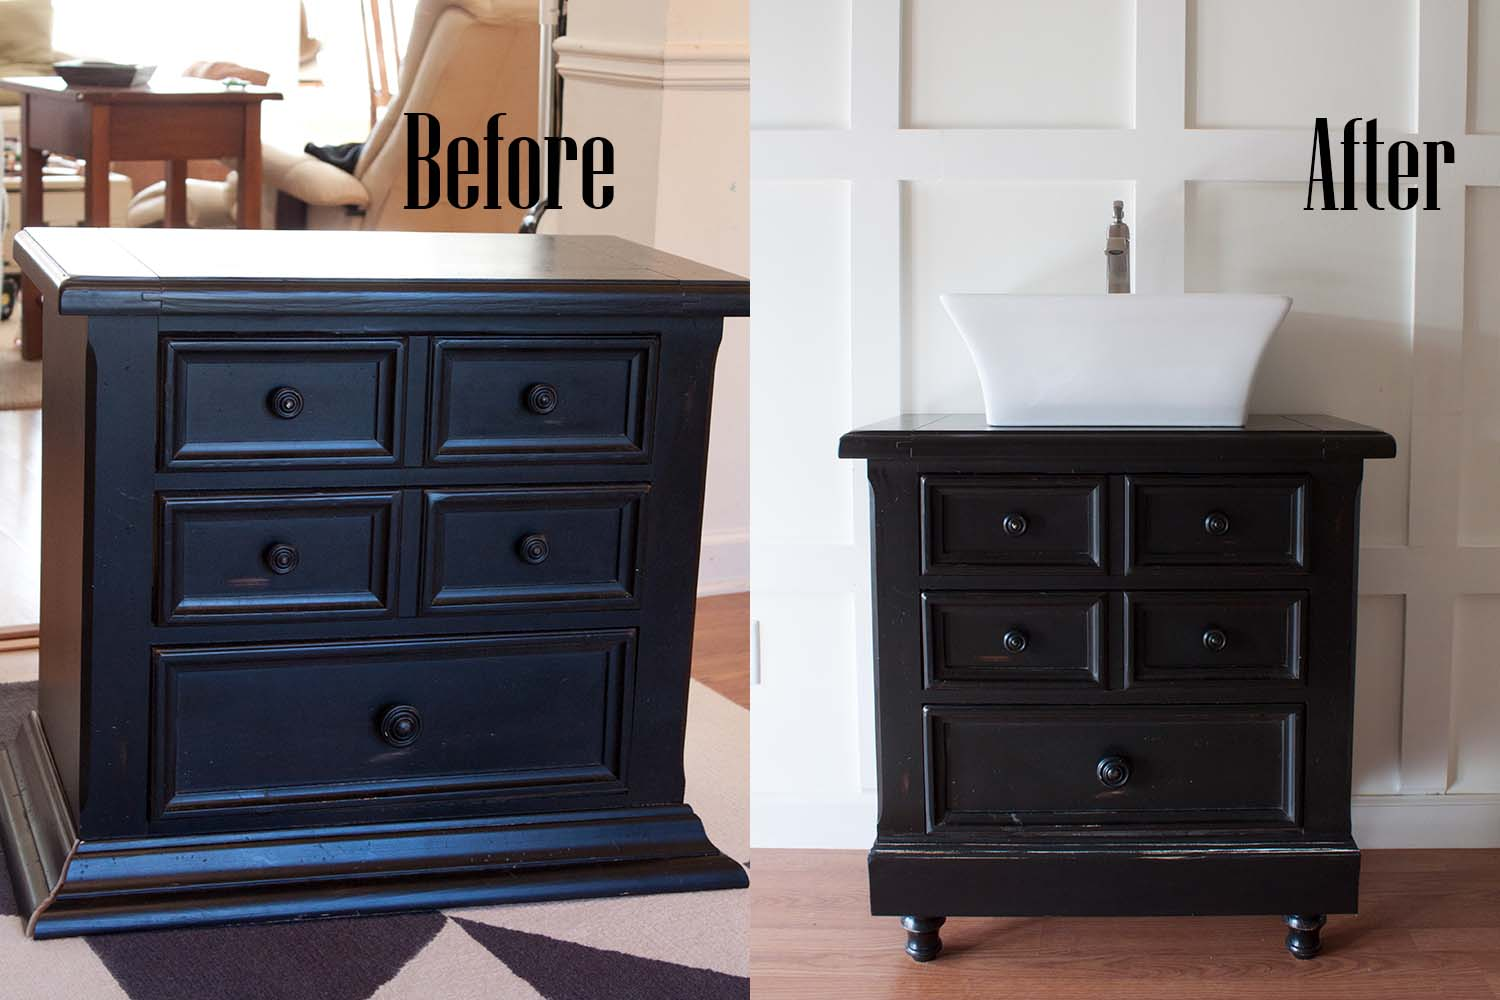 How to Turn an Old Nightstand Into a Bathroom Vanity